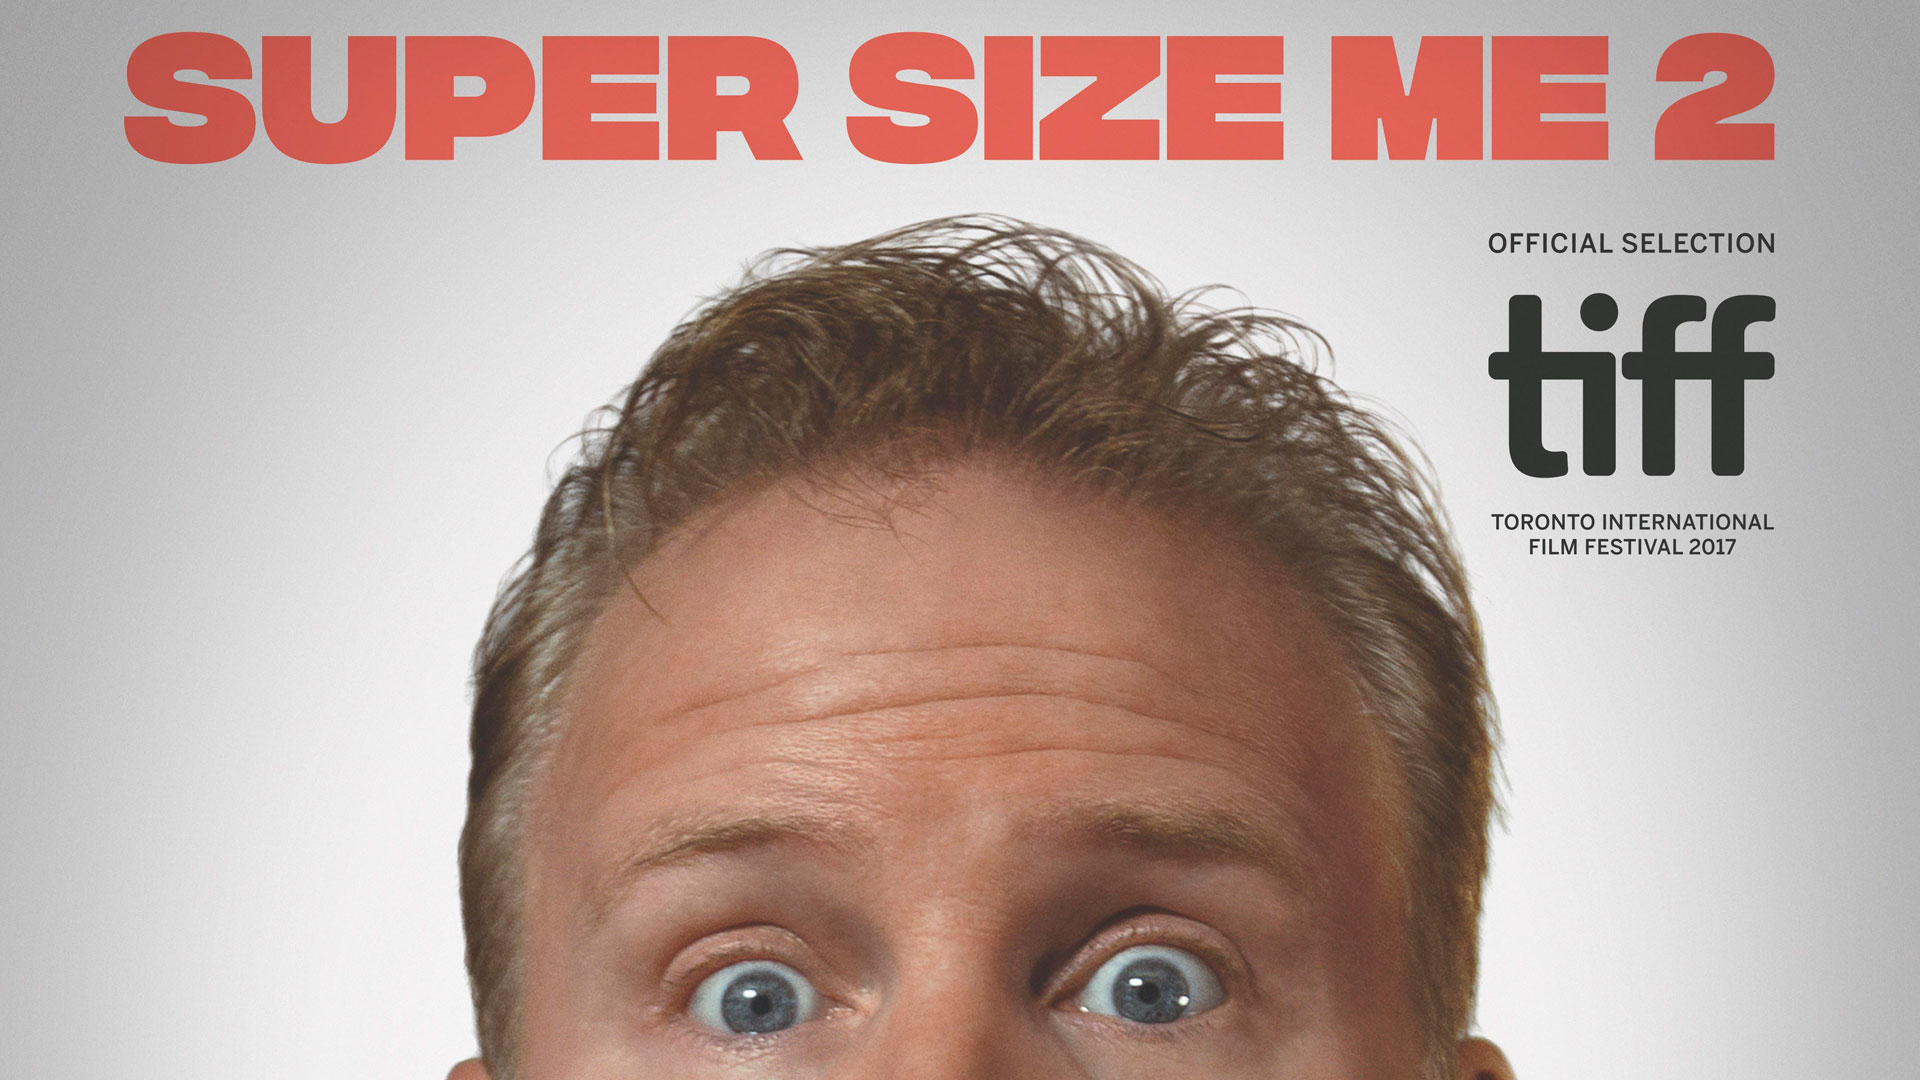 Super Size Me2: Holy Chicken!